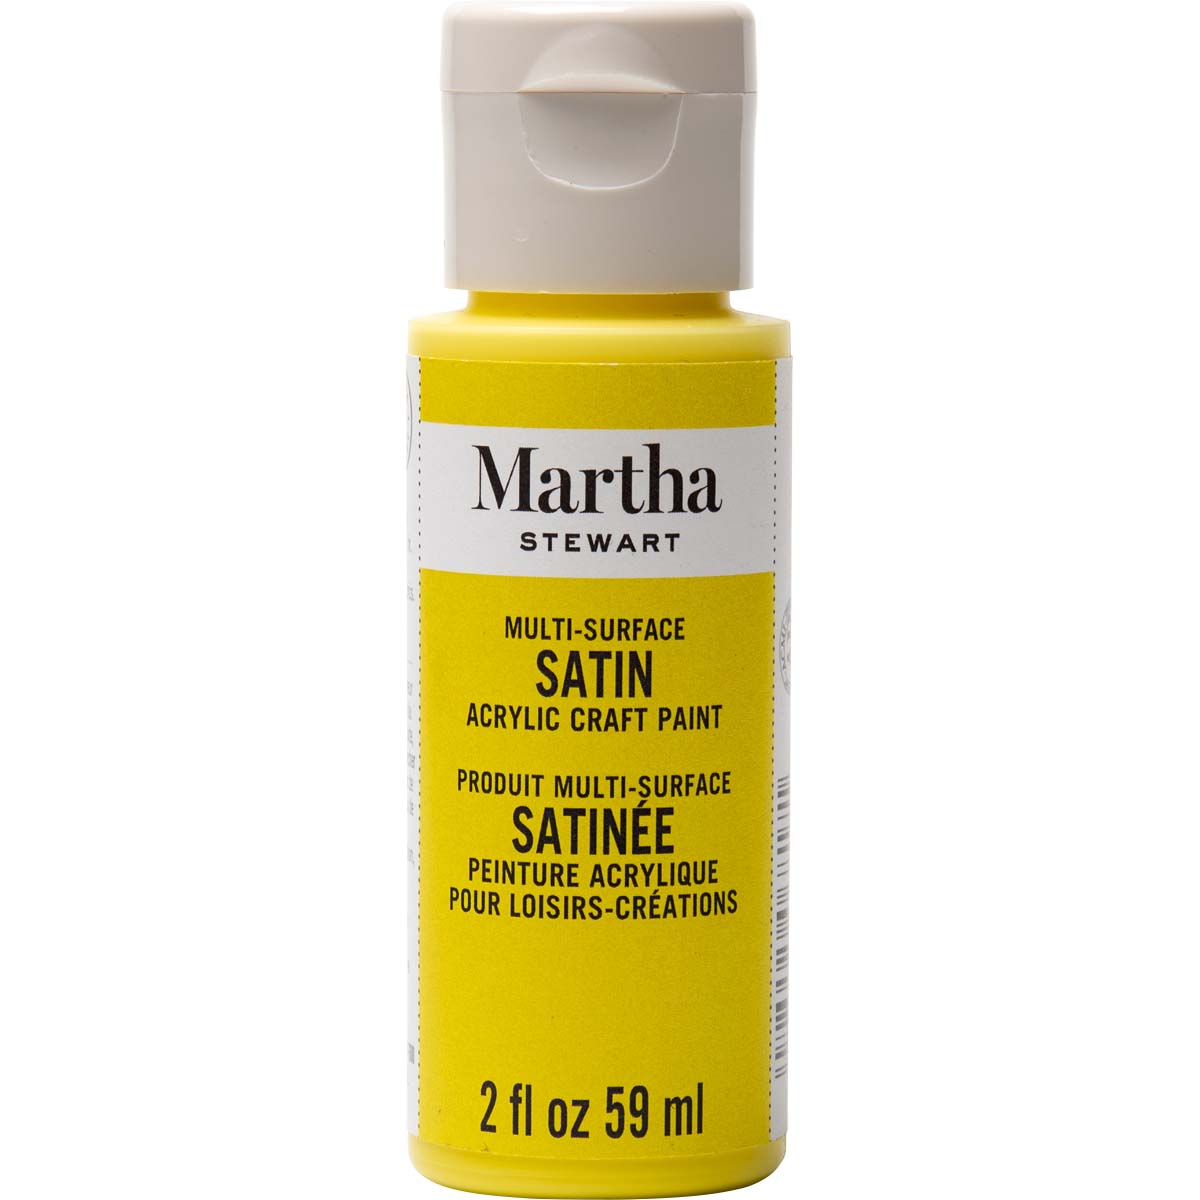 Martha Stewart ® Multi-Surface Satin Acrylic Craft Paint - Meyer Lemon, 2 oz. - 33544CA